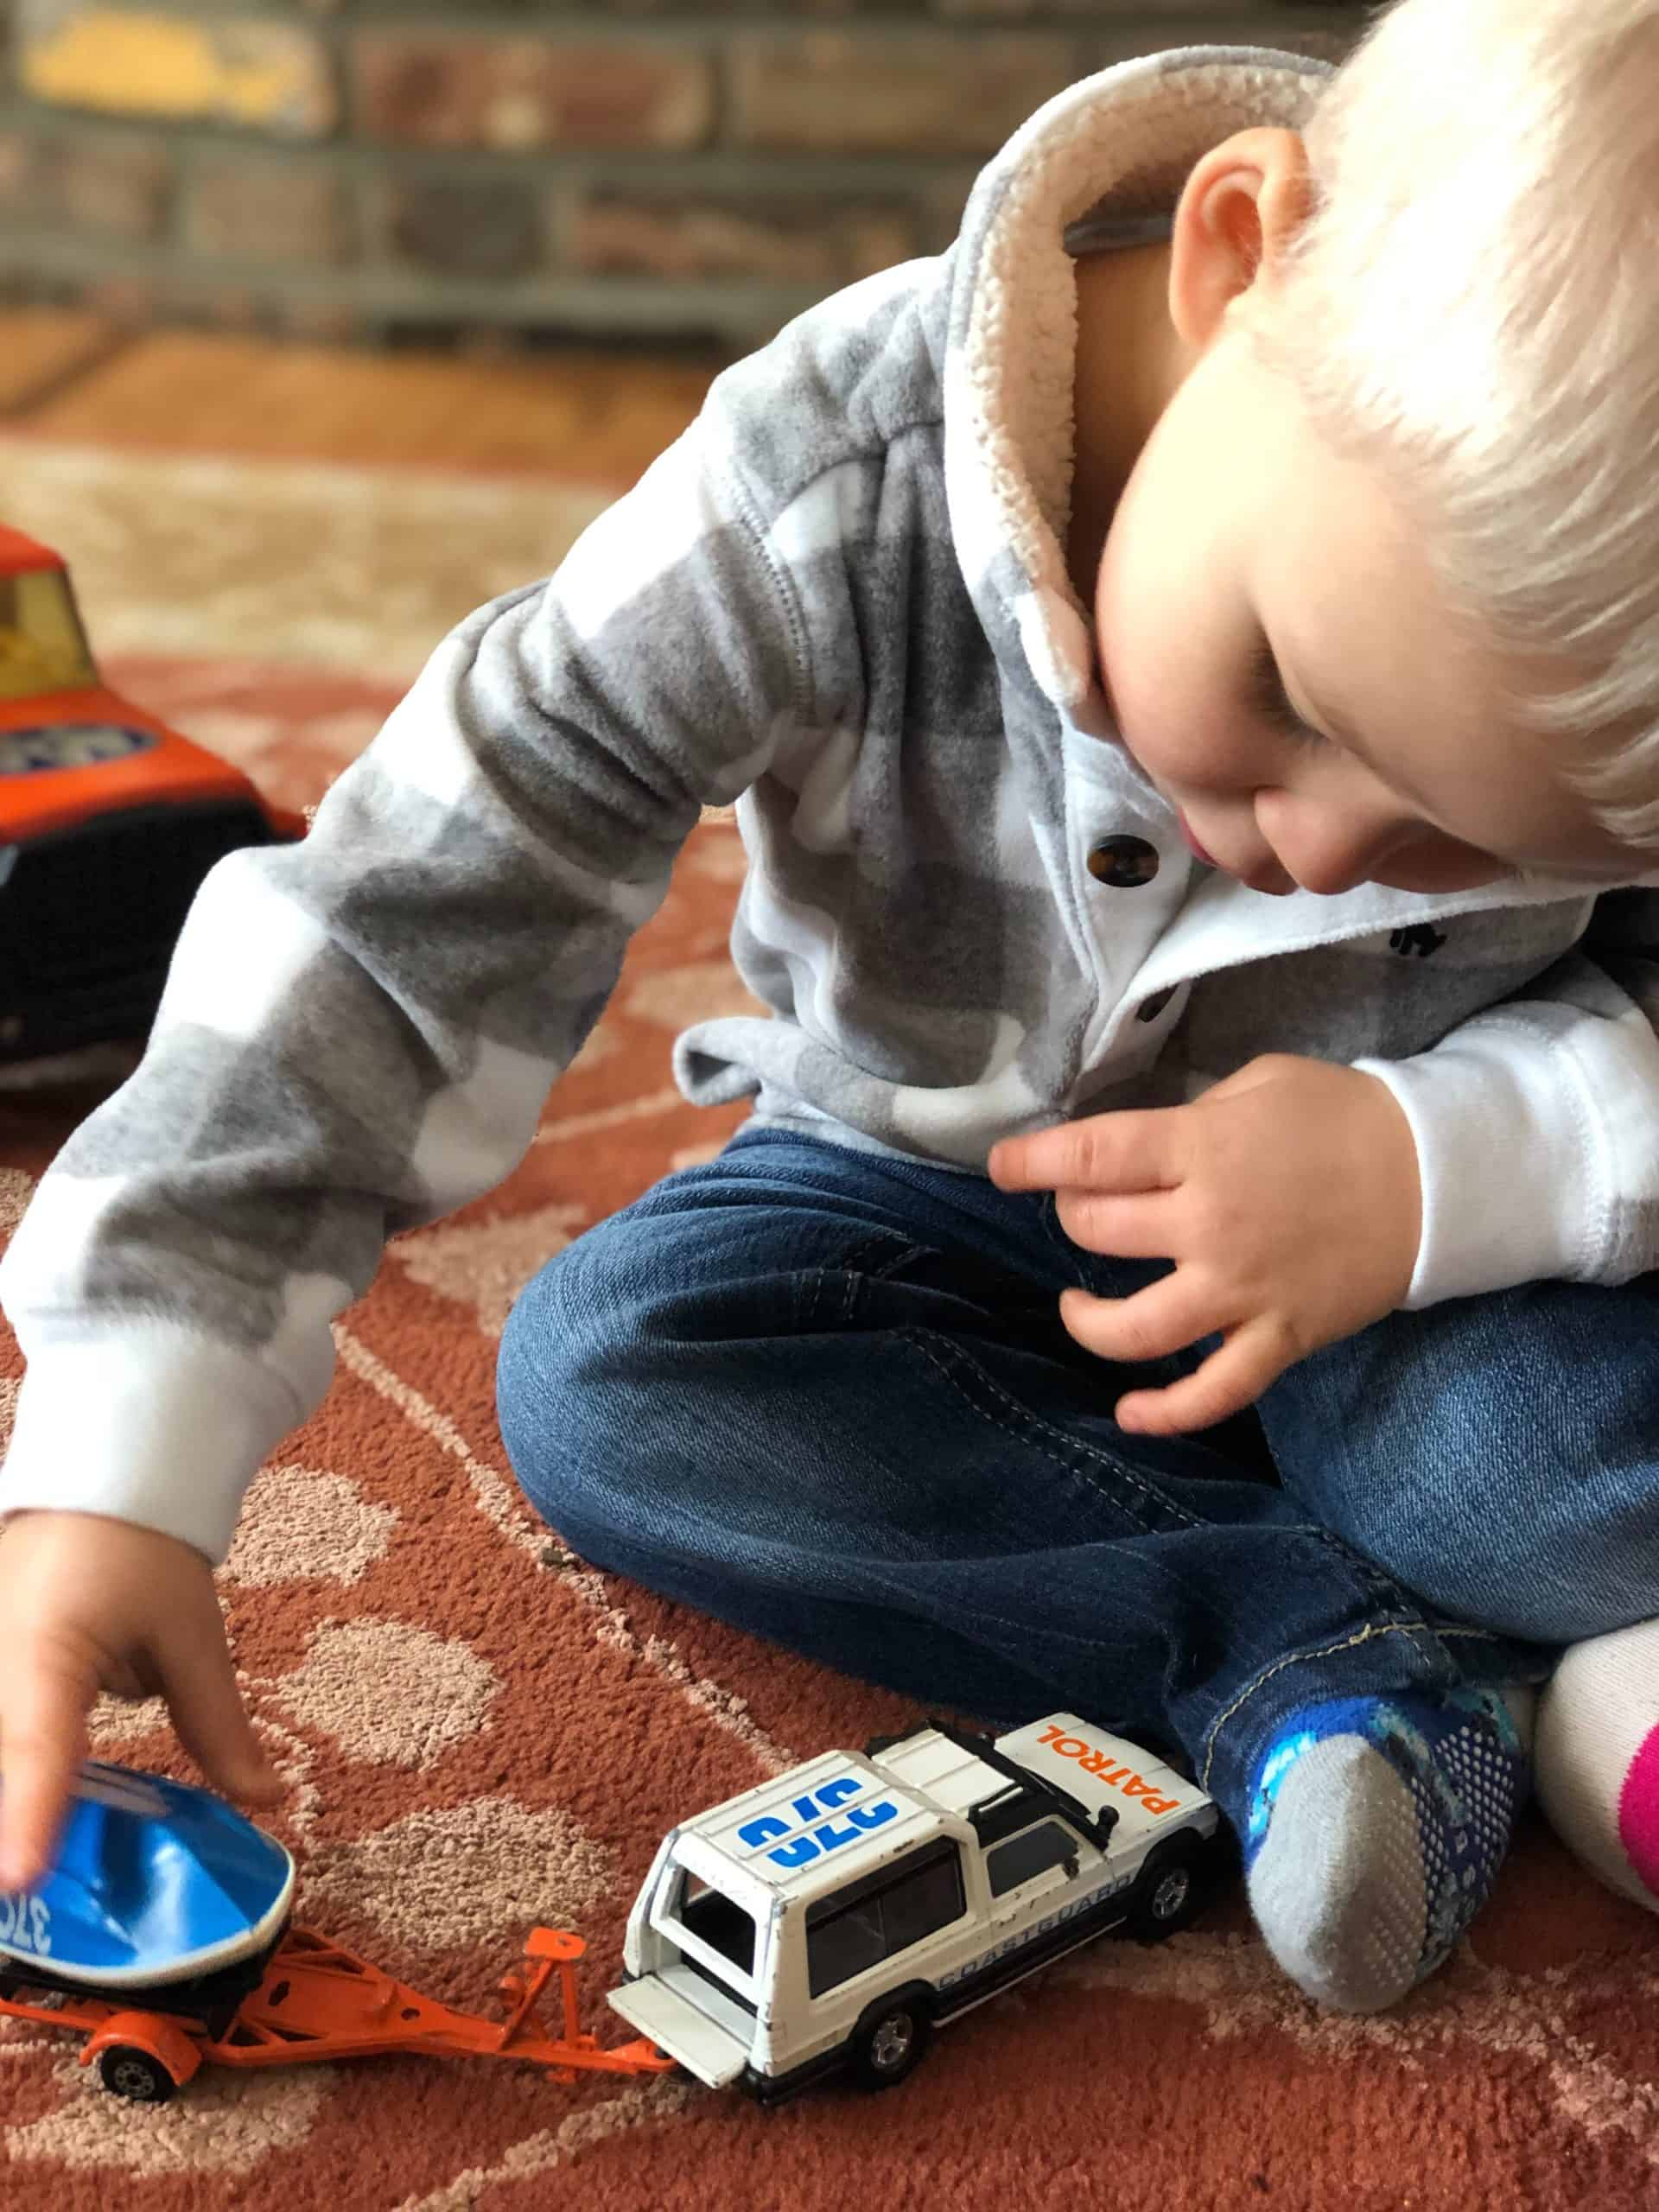 Importance Of Toys In Children's Life